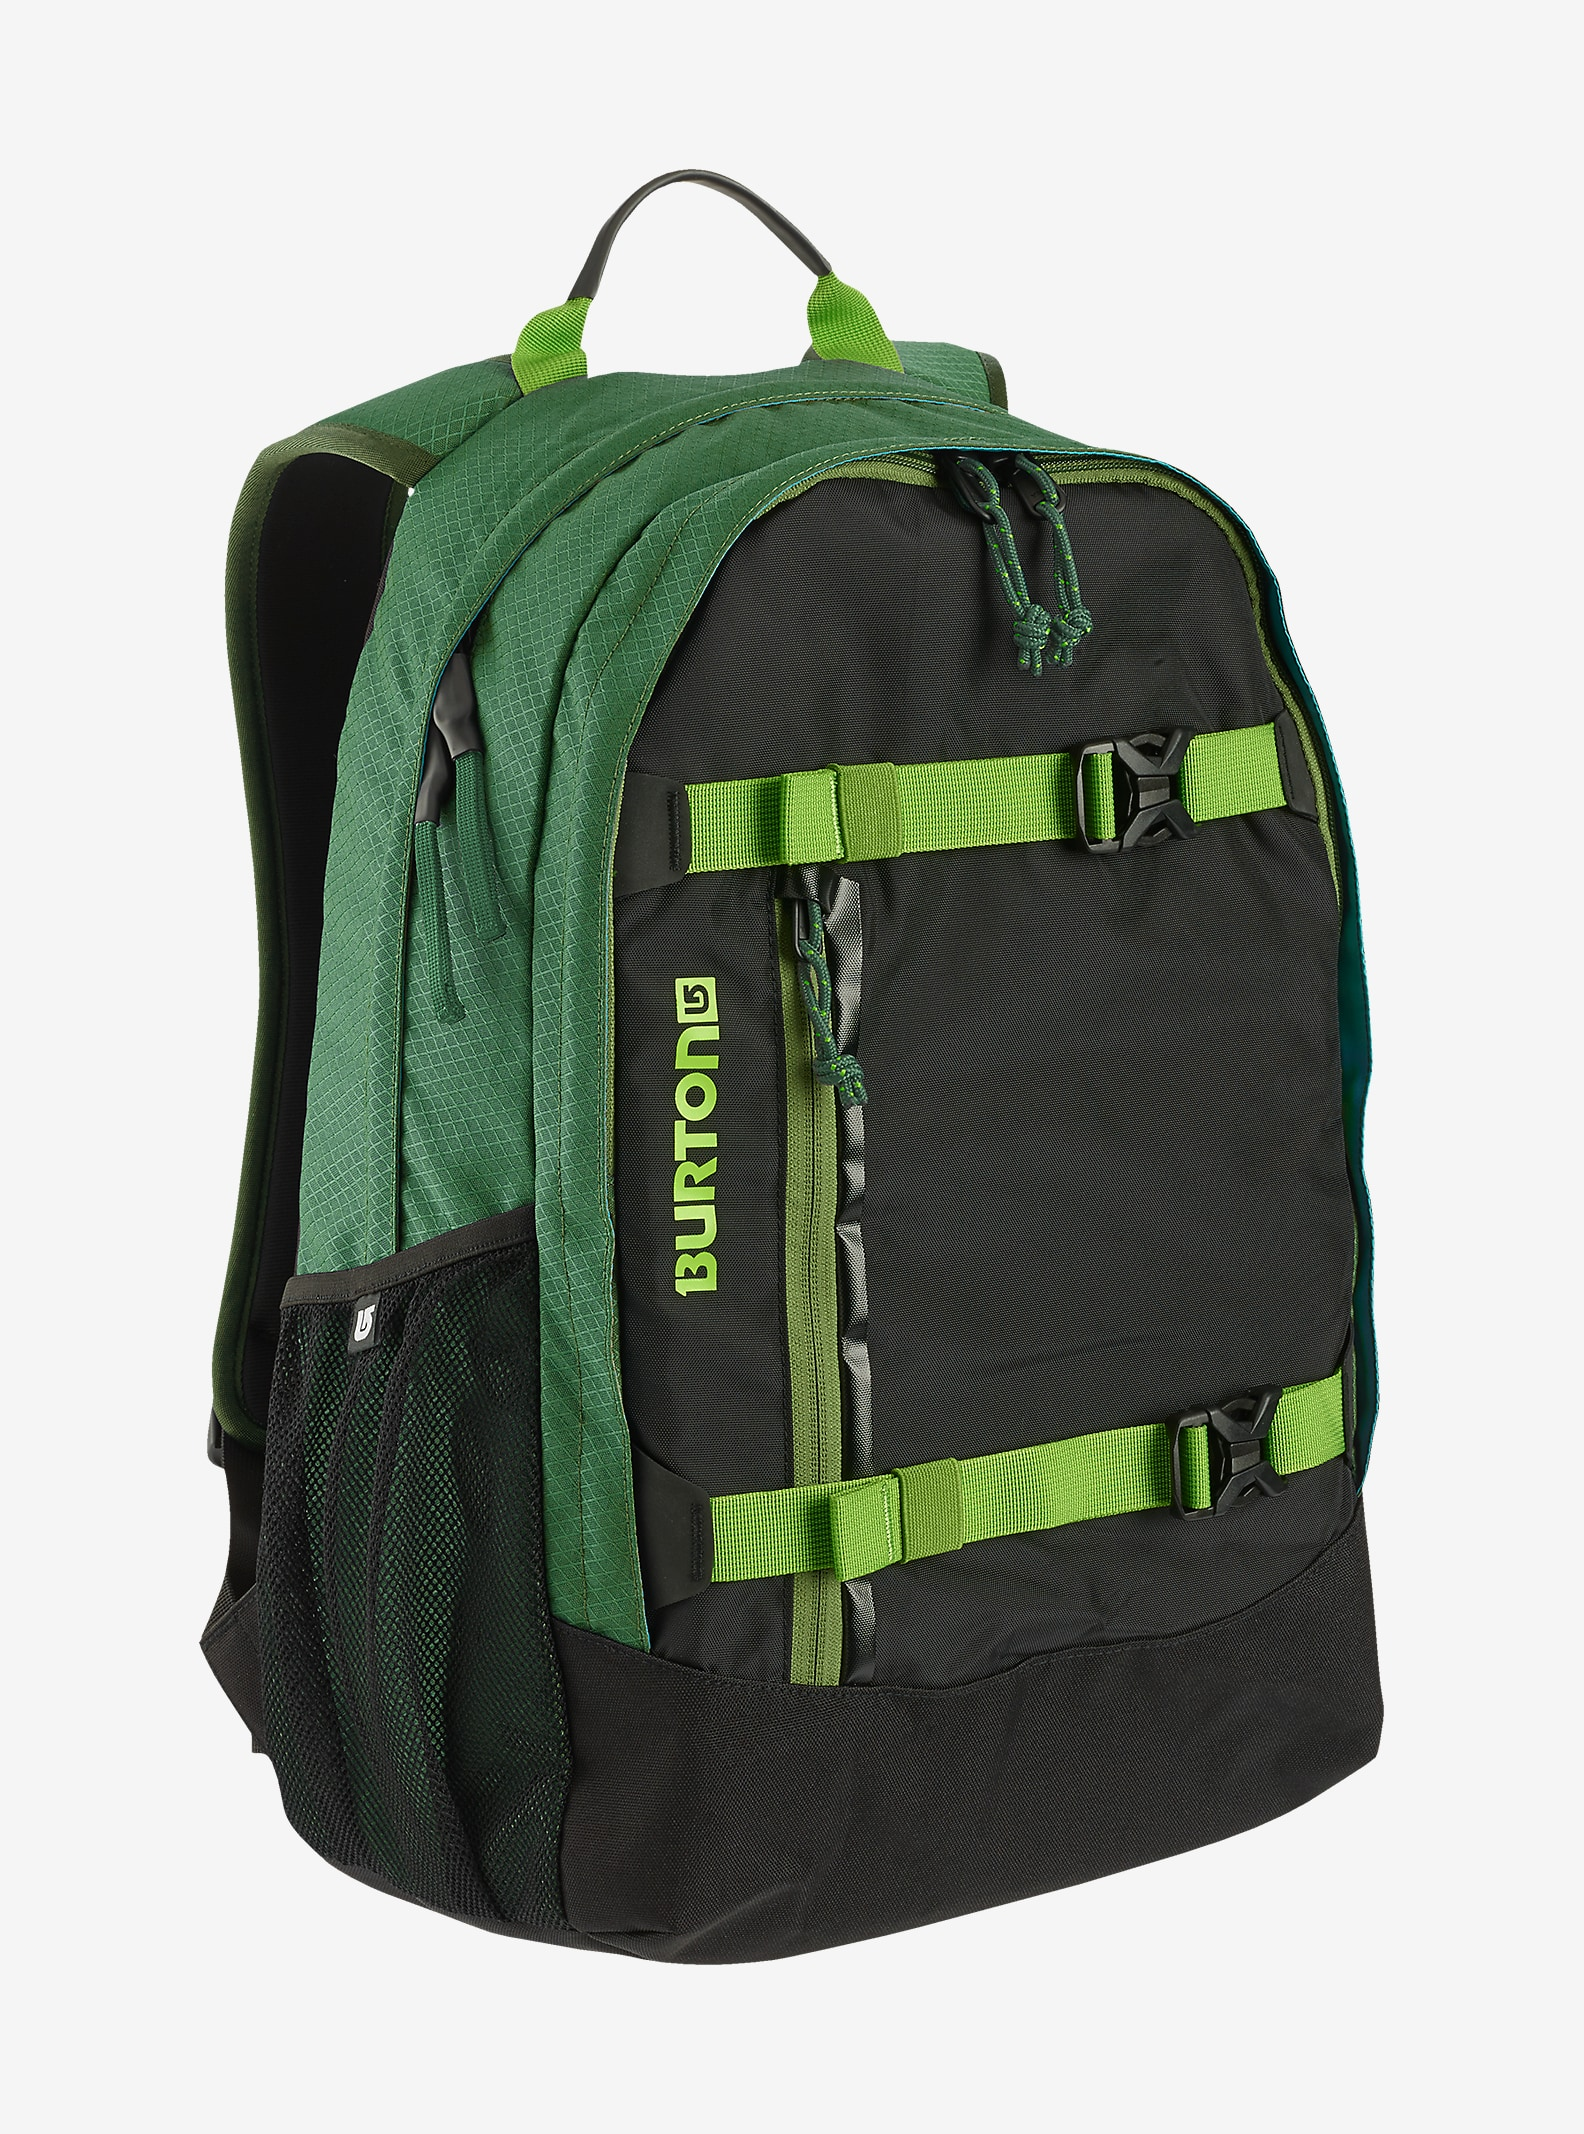 Burton Day Hiker 25L Backpack shown in Fairway Ripstop [bluesign® Approved Fabric]